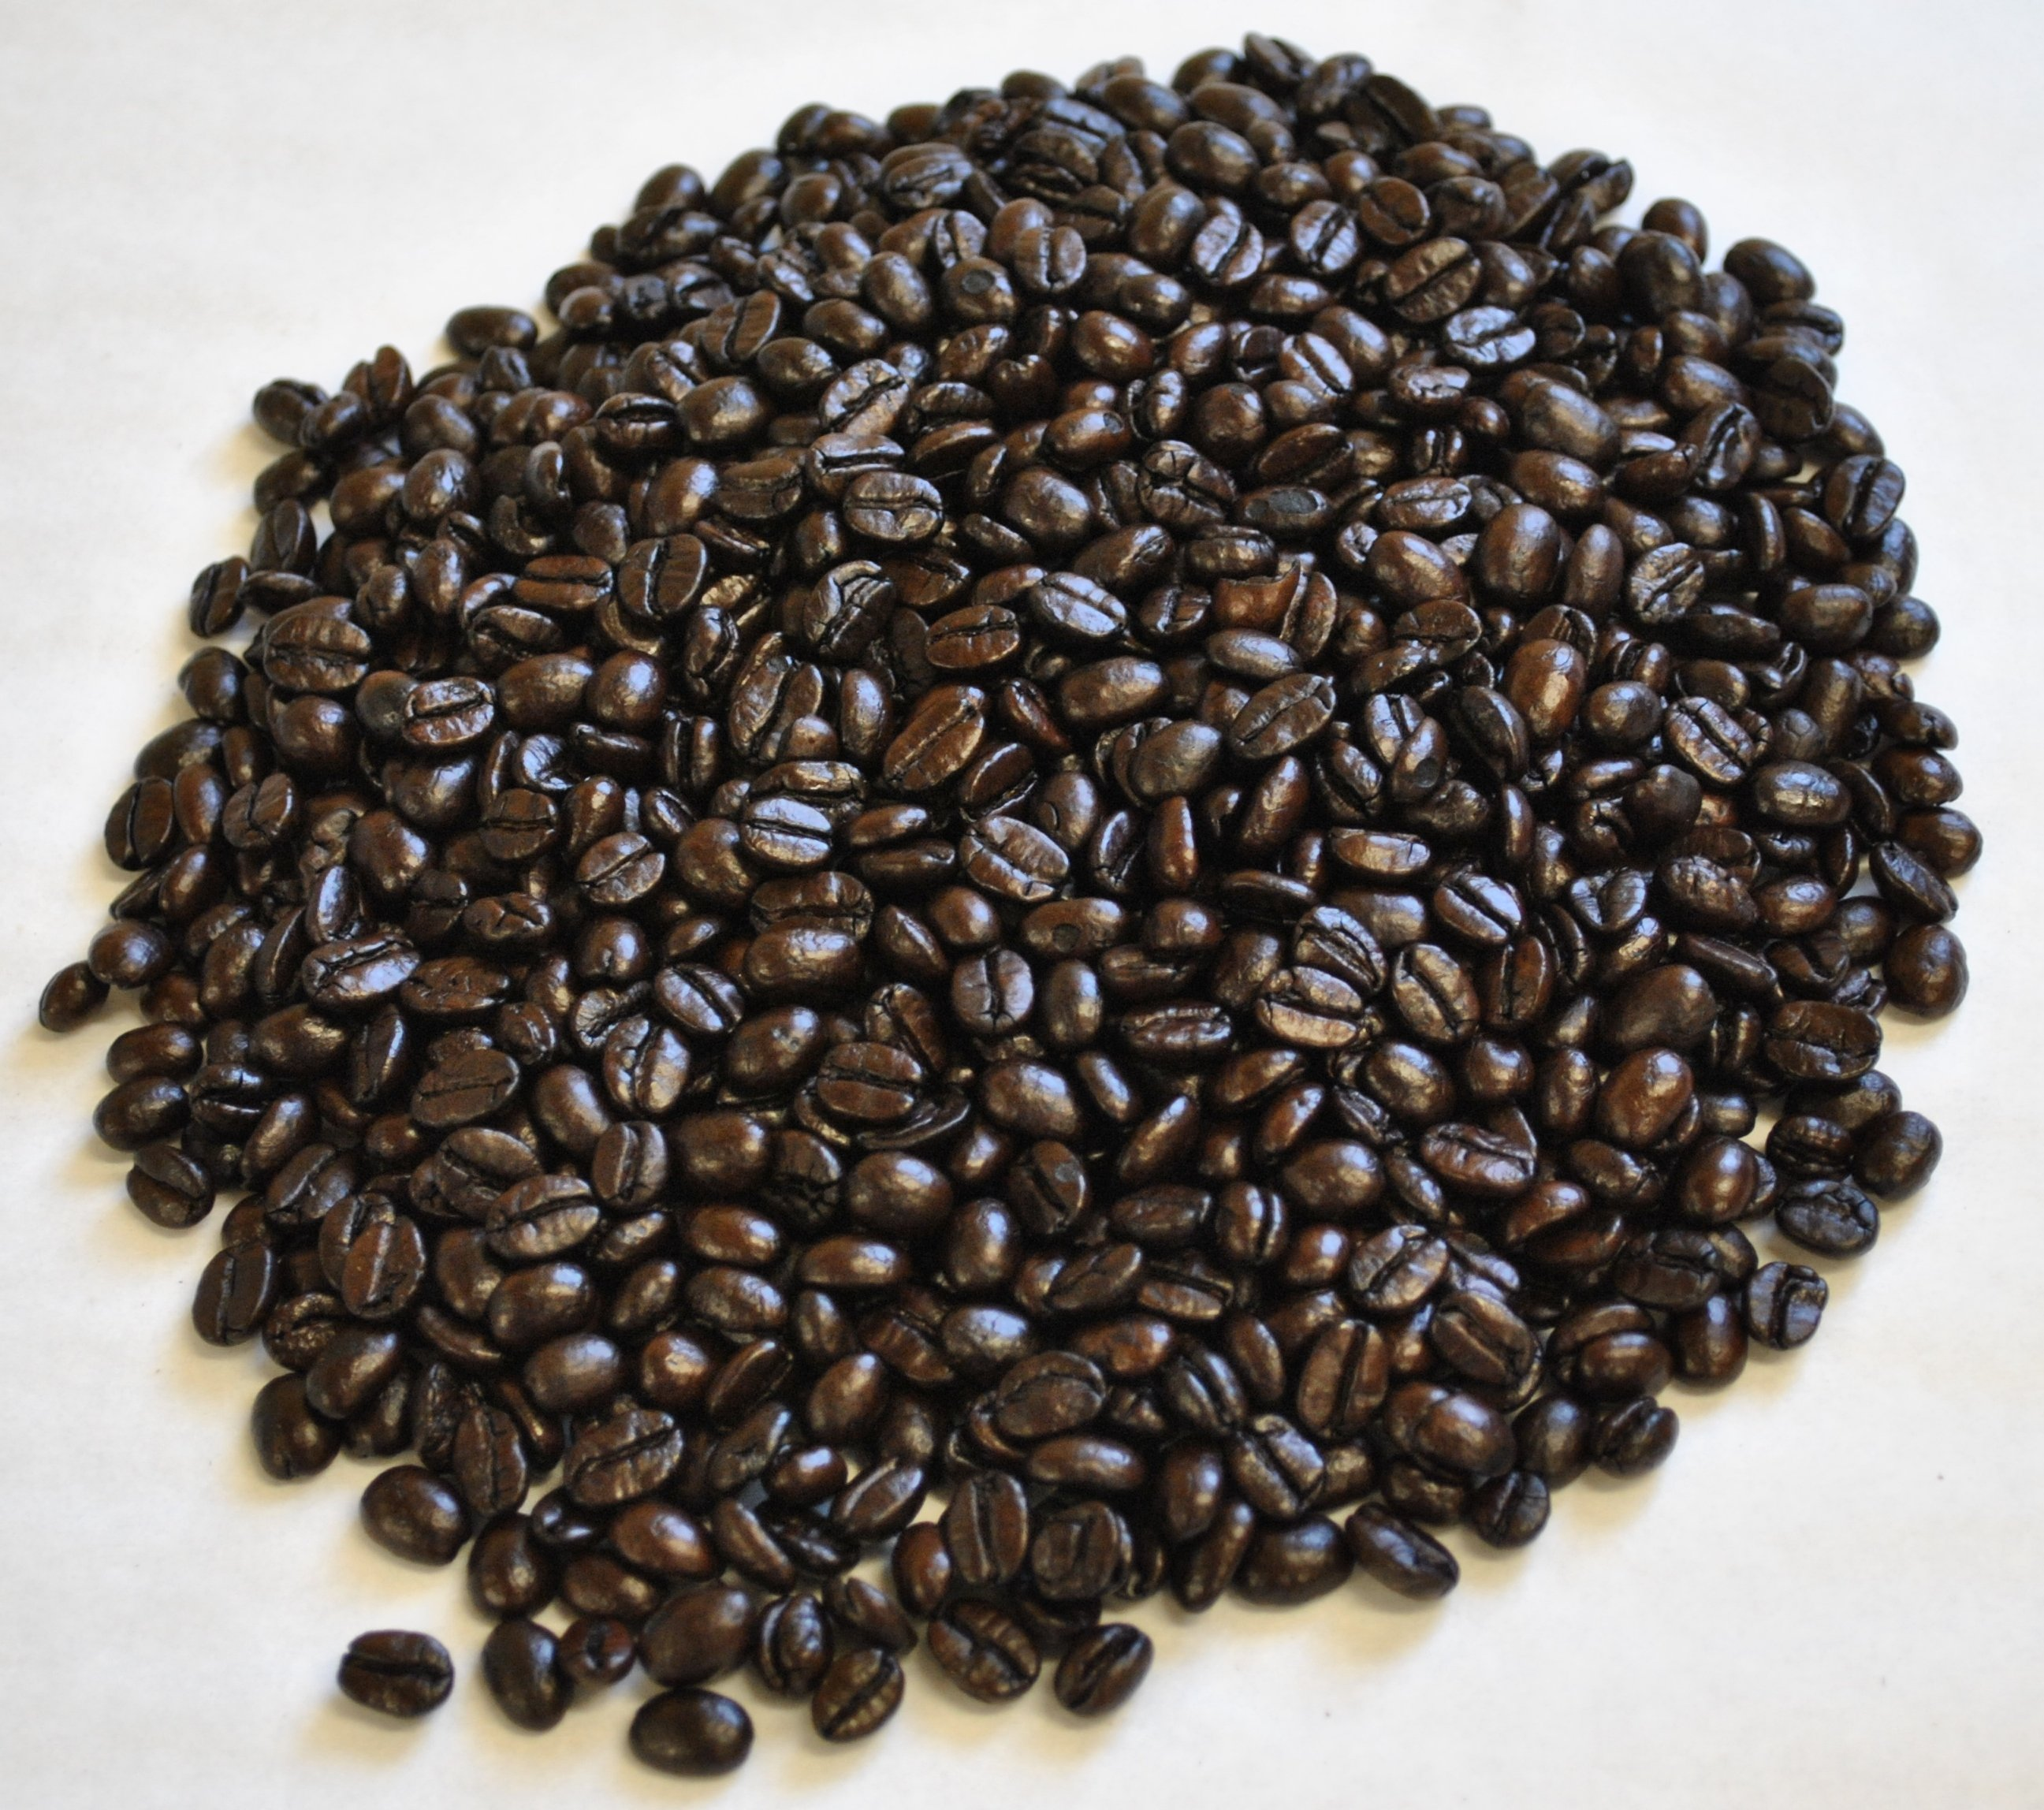 Decaffinated Dark Roast Coffee